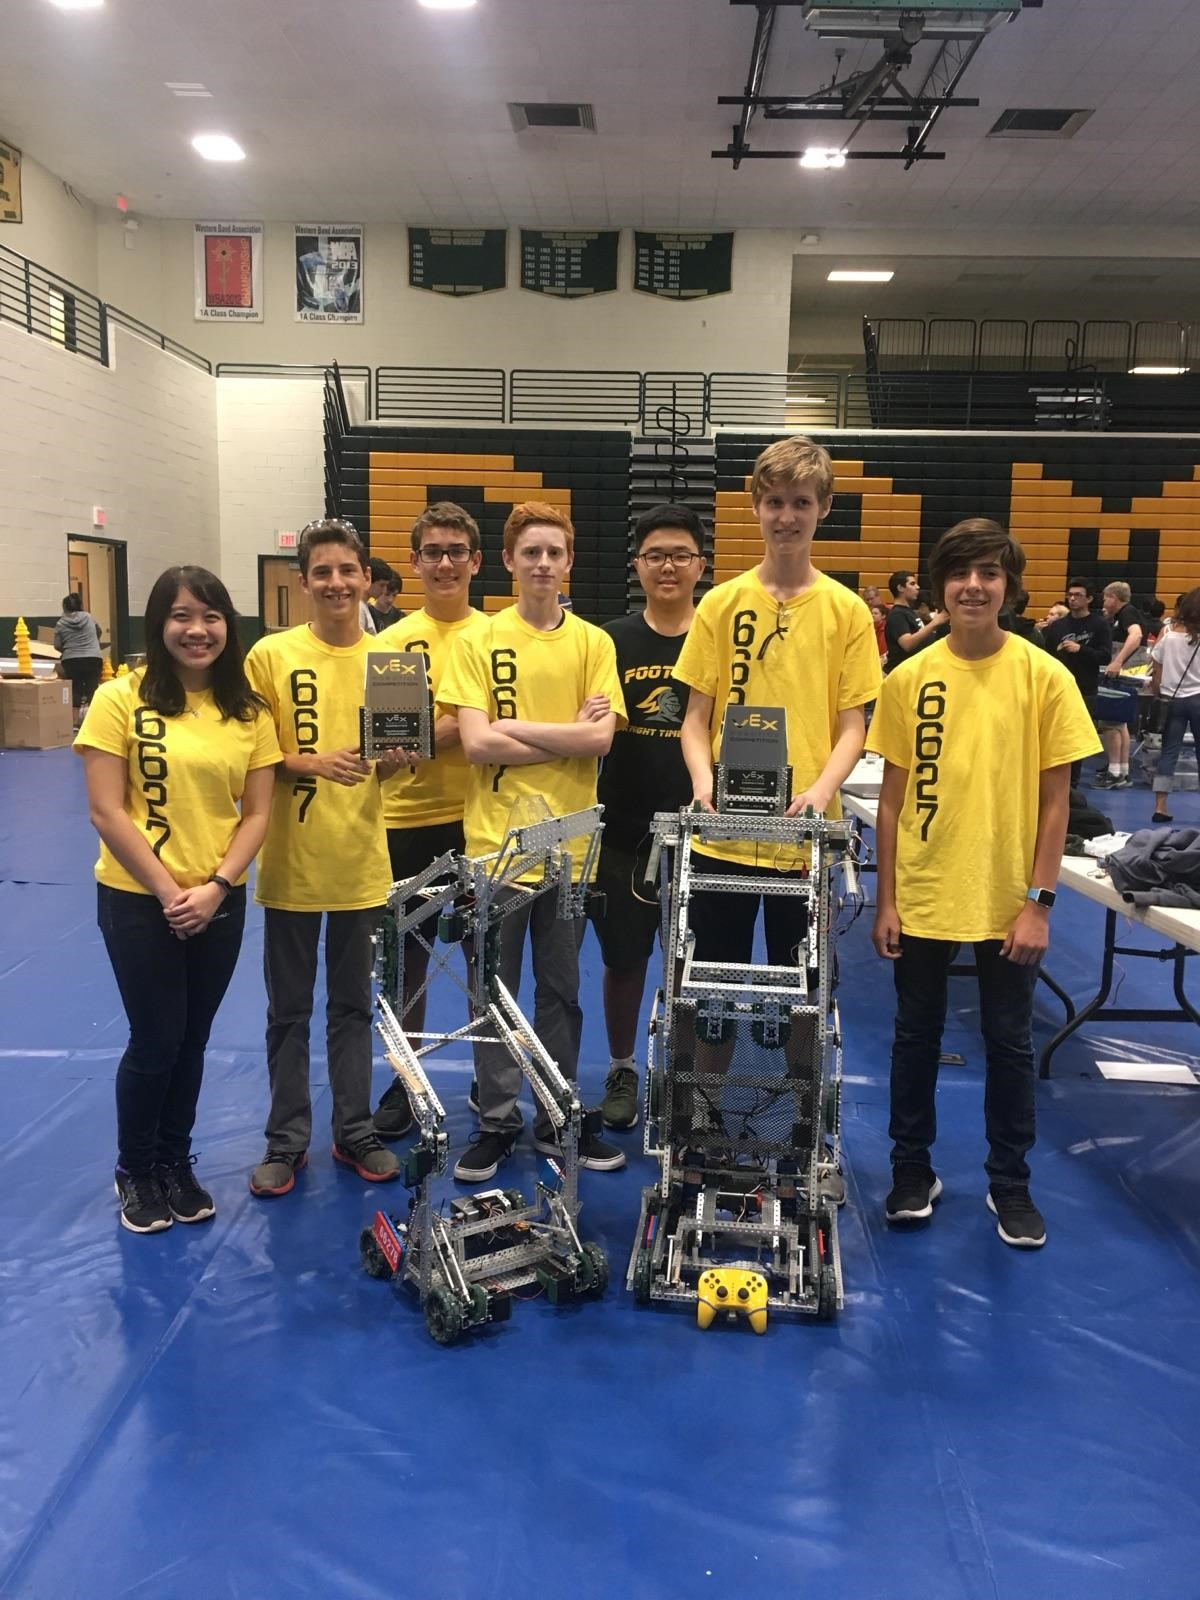 Team 6627A and 6627B after winning the tournament